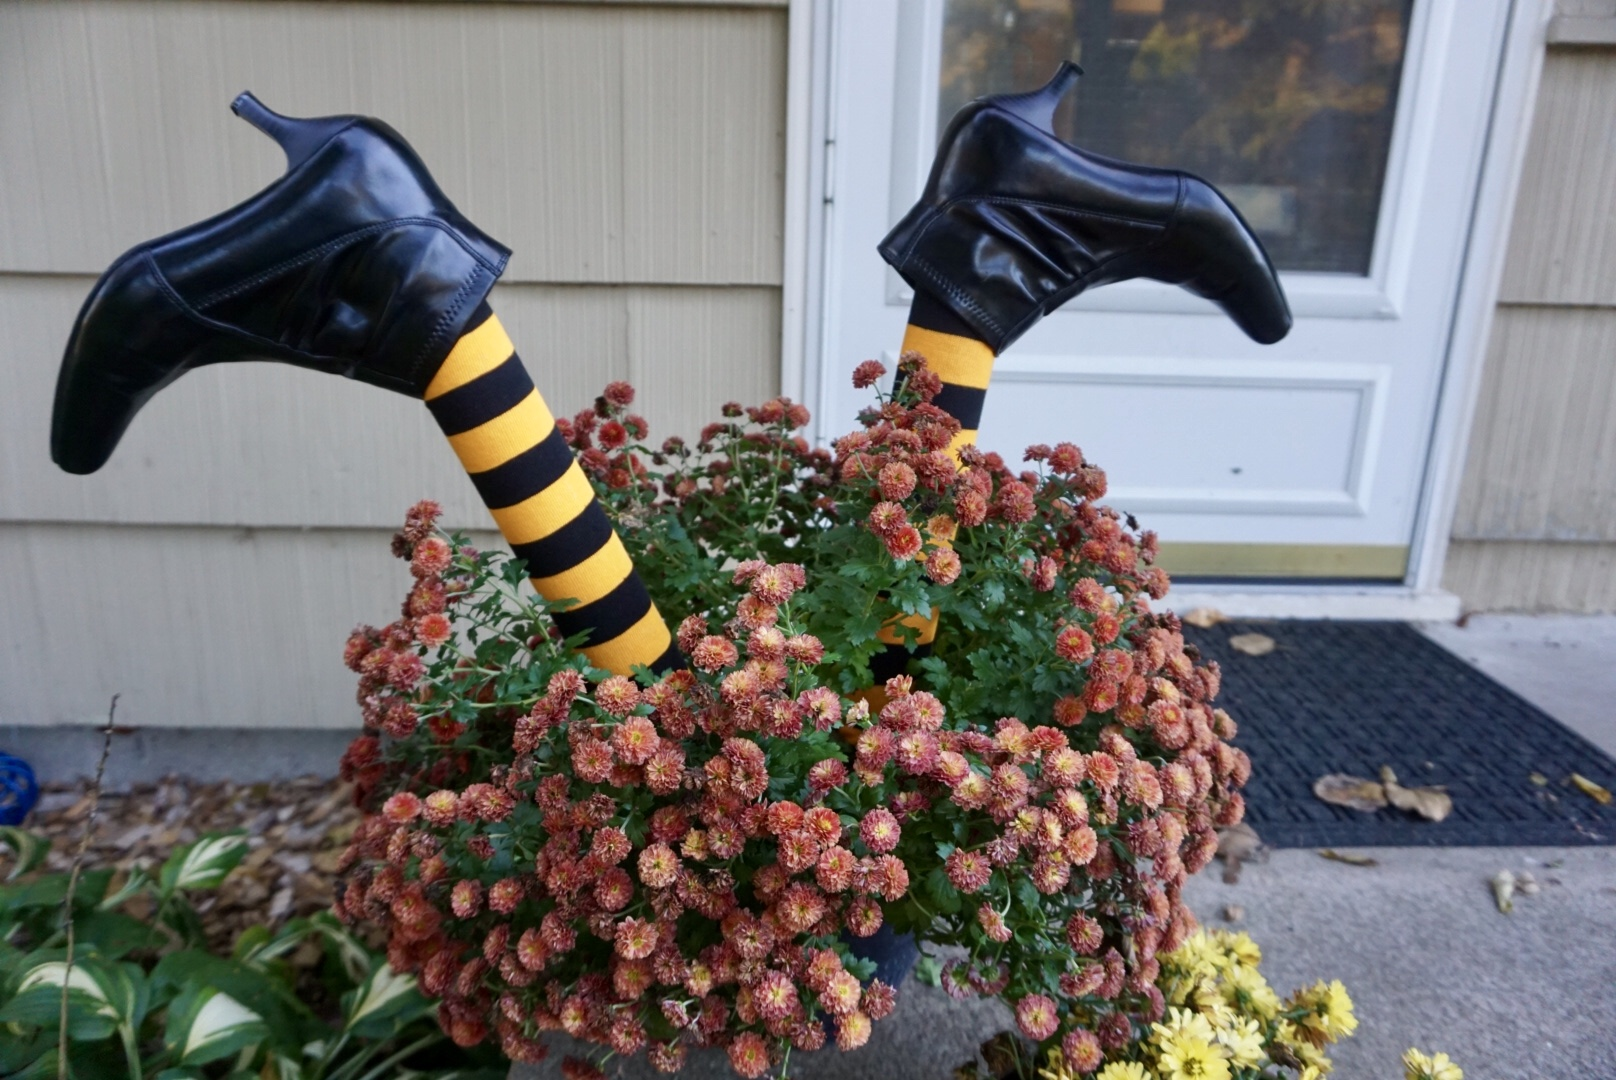 DIY witch legs make fall mum planters even more fun. #halloweendiy #halloweencrafts #halloweendecor #diyhalloweendecorations